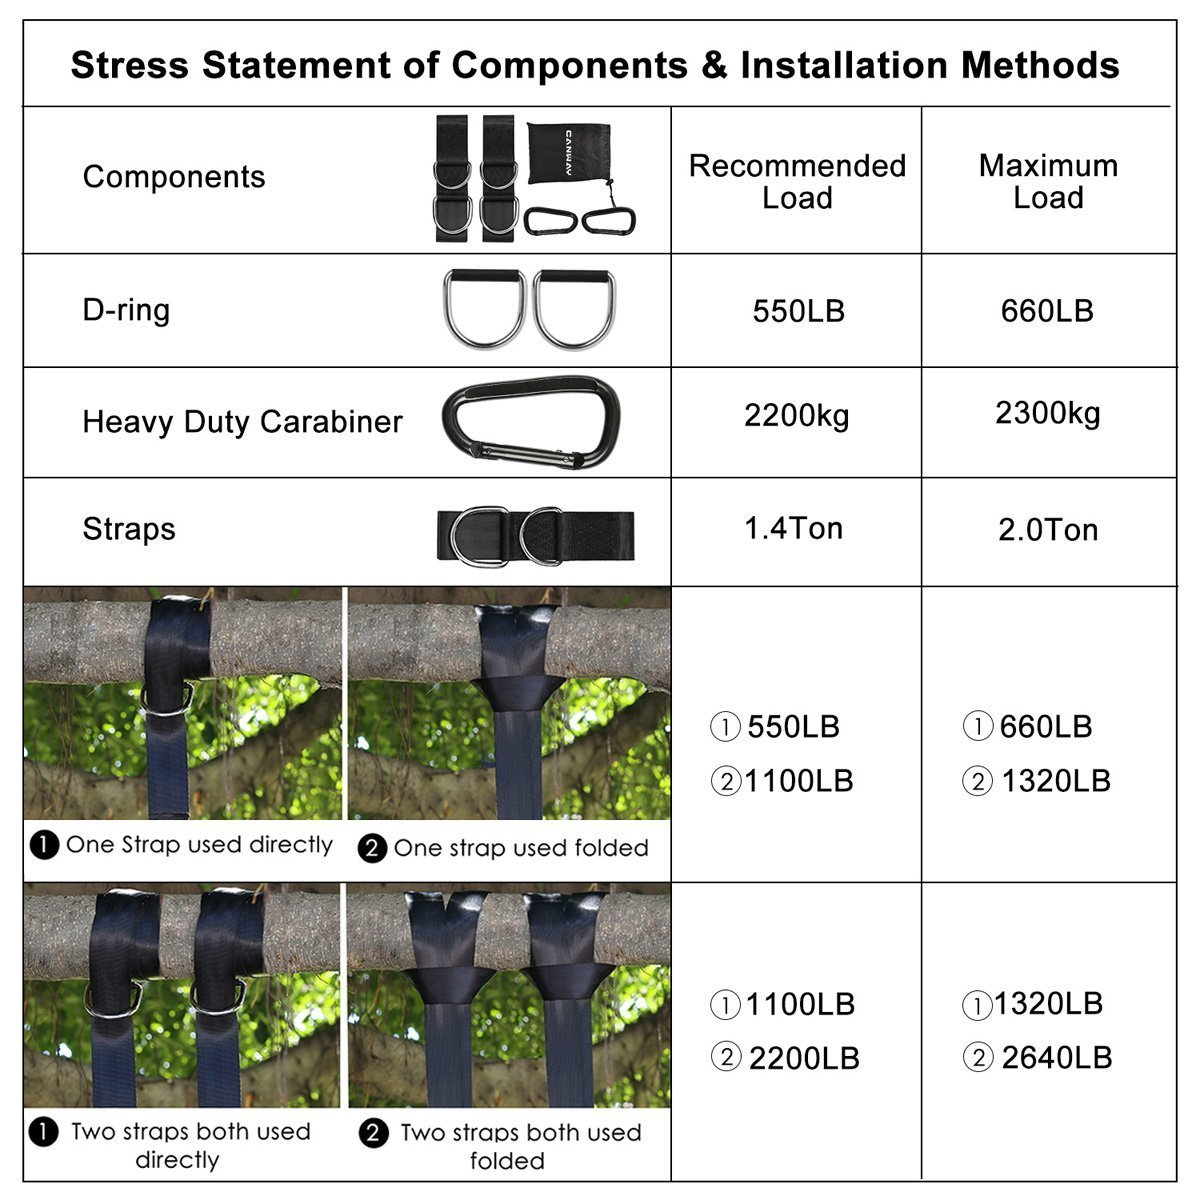 Canway Set of 2 Tree Swing Straps Hanging Kit Holds Max 2200 LB with Two Heavy Duty Carabiners Stainless Steel 5ft - Camping Hammock Accessories